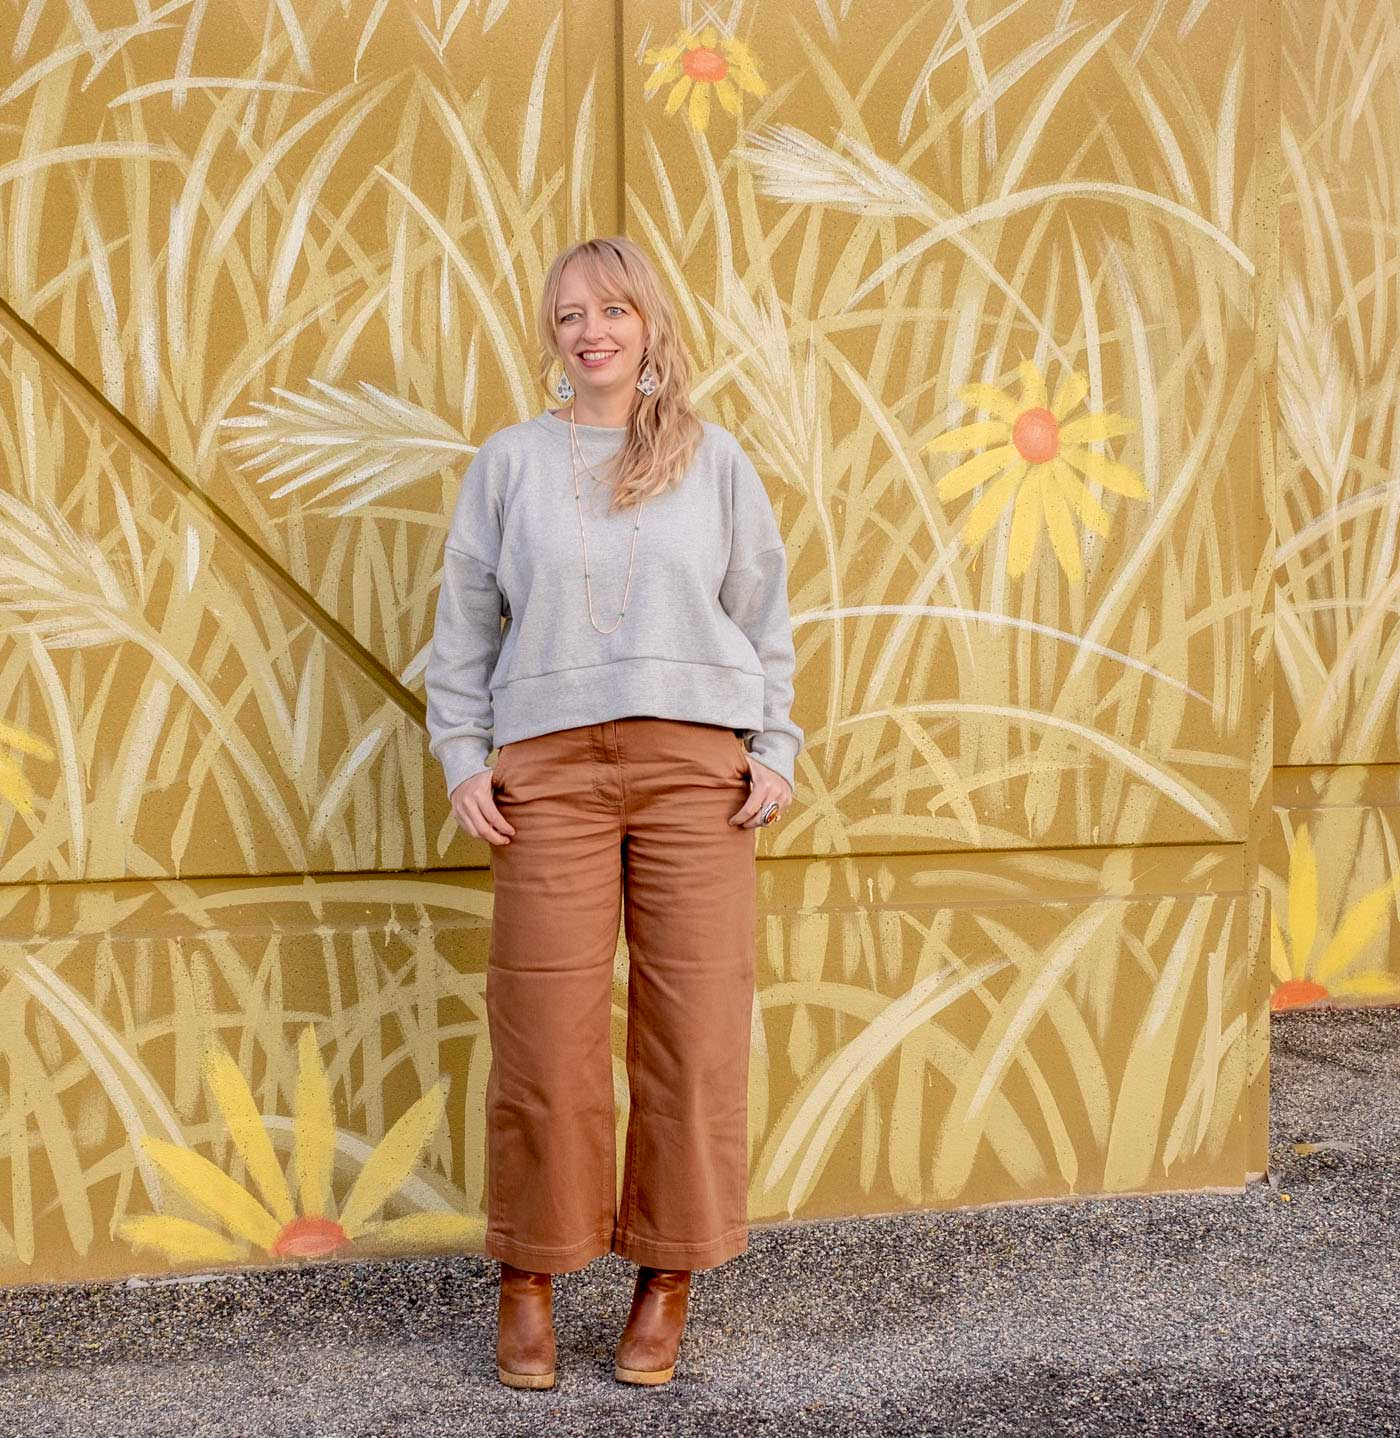 Amber wearing the Hosta sweatshirt—a slightly cropped, long sleeve, crew neck top—brown wide leg pants, and clog boots.